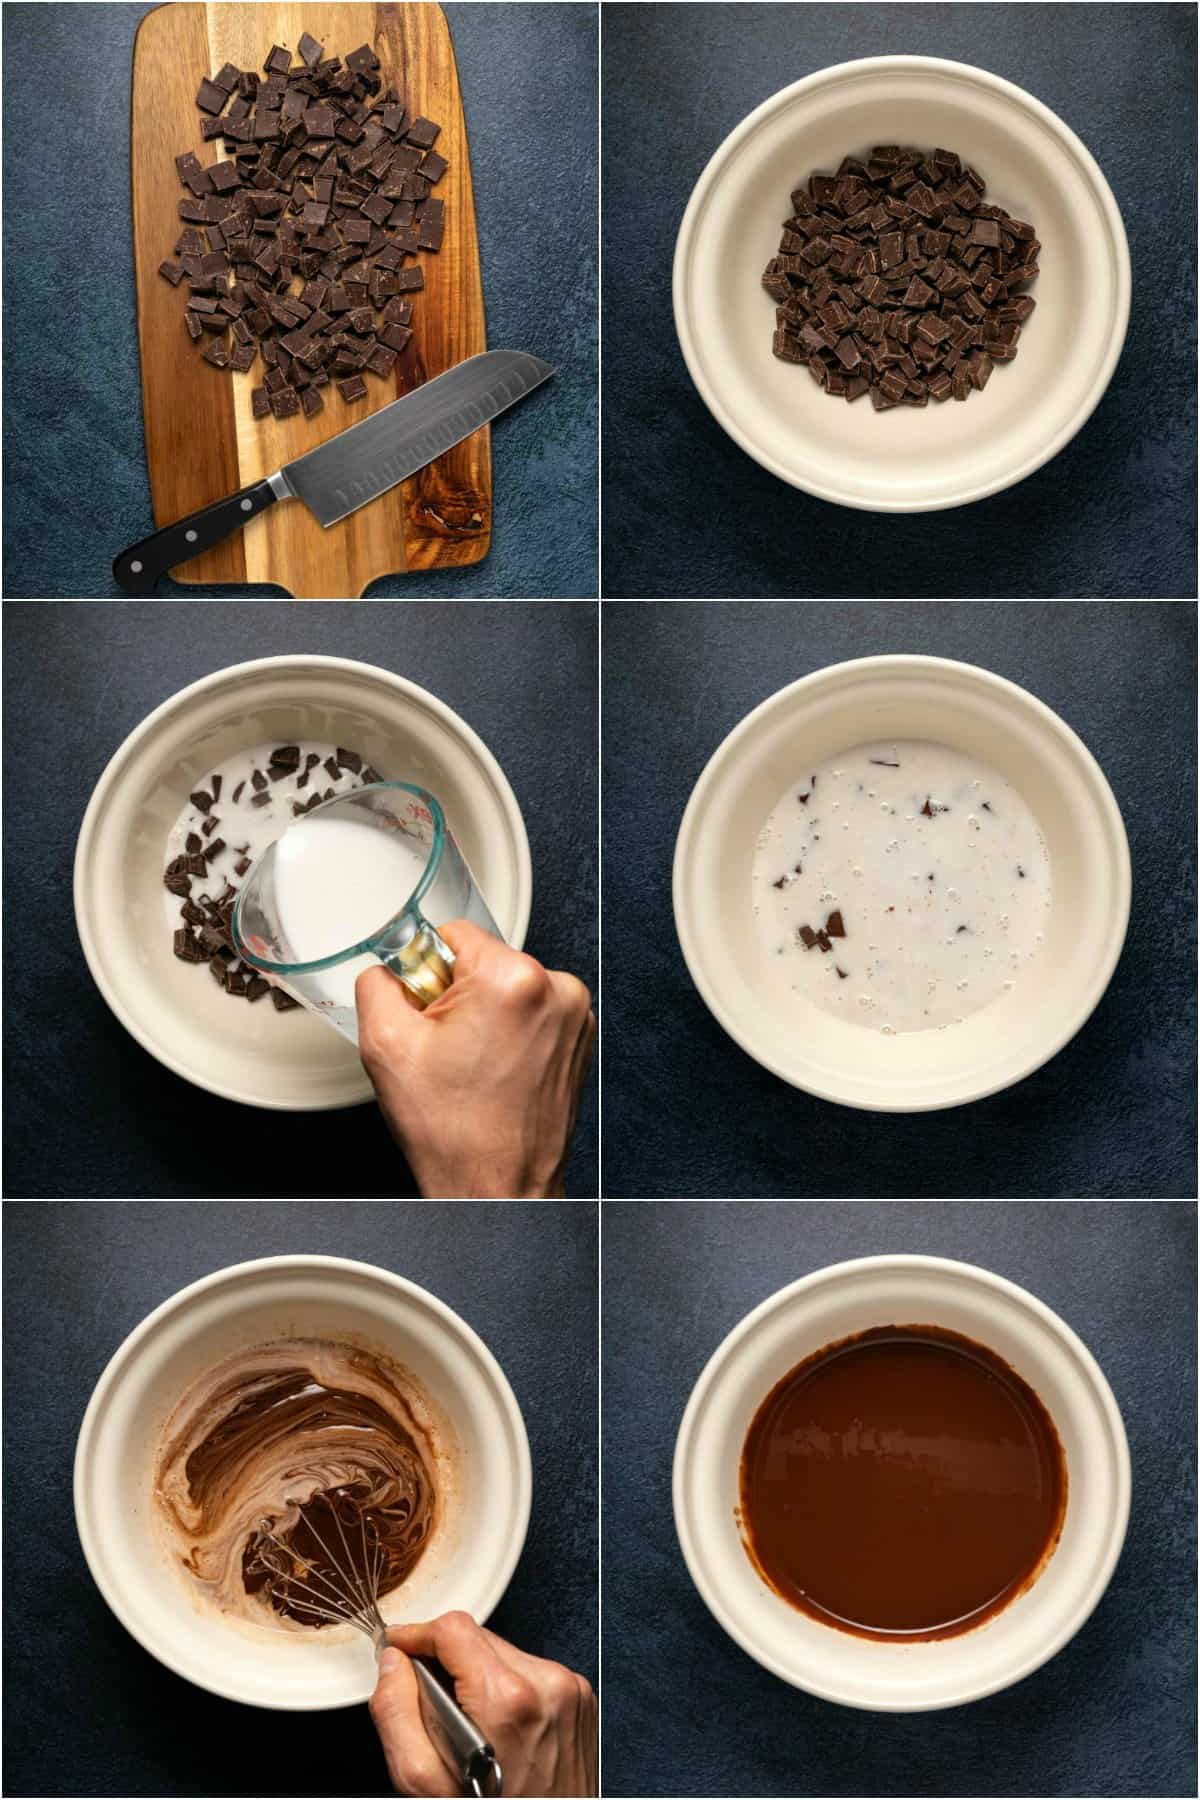 Step by step process photo collage of making vegan chocolate ganache.